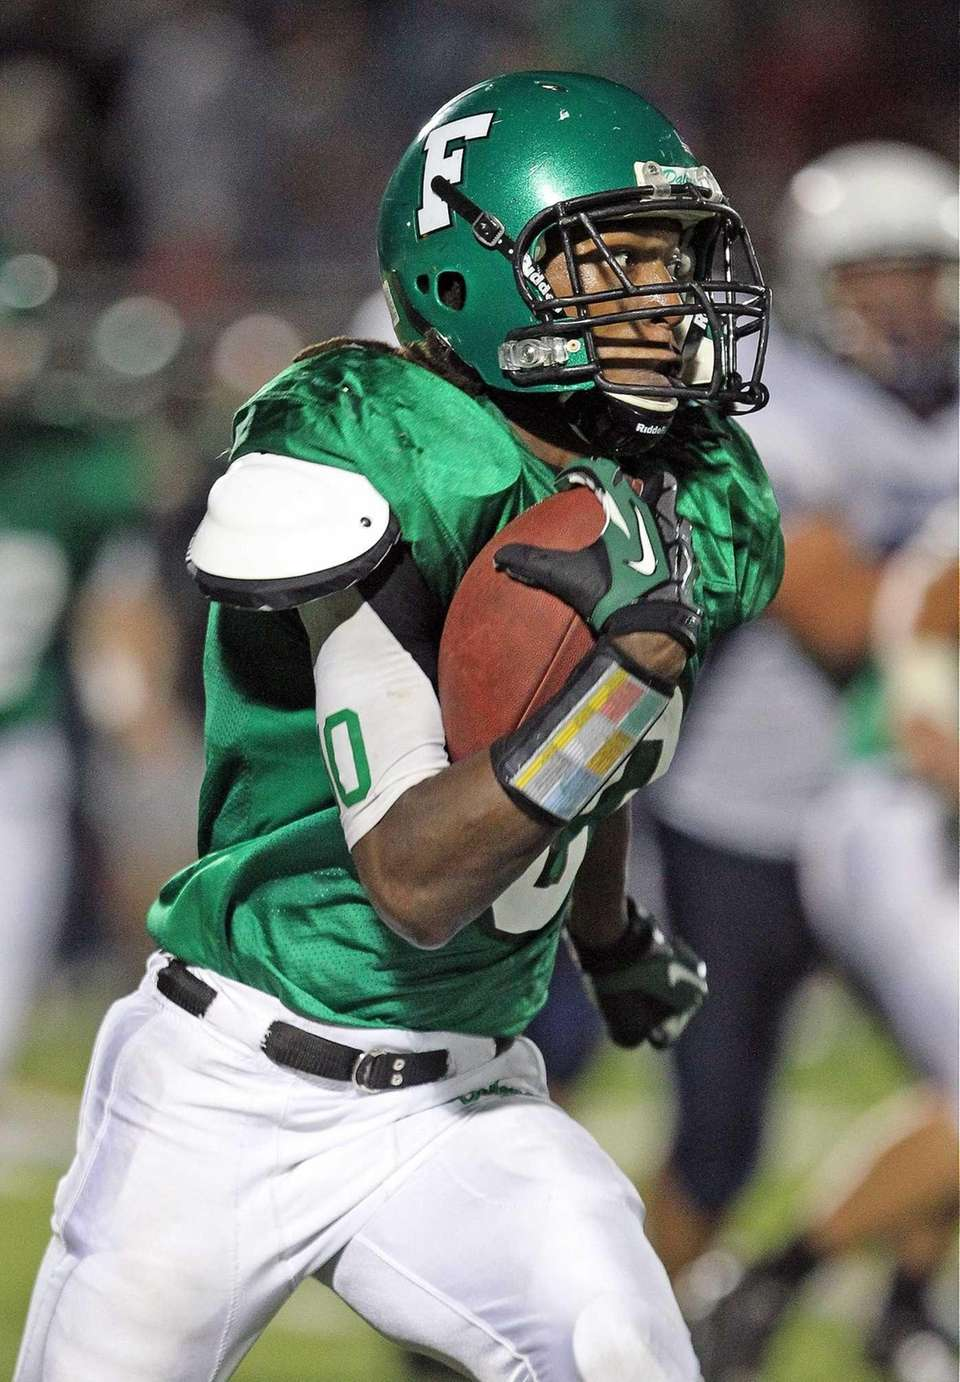 Farmingdale's Curtis Jenkins runs the ball against Oceanside.